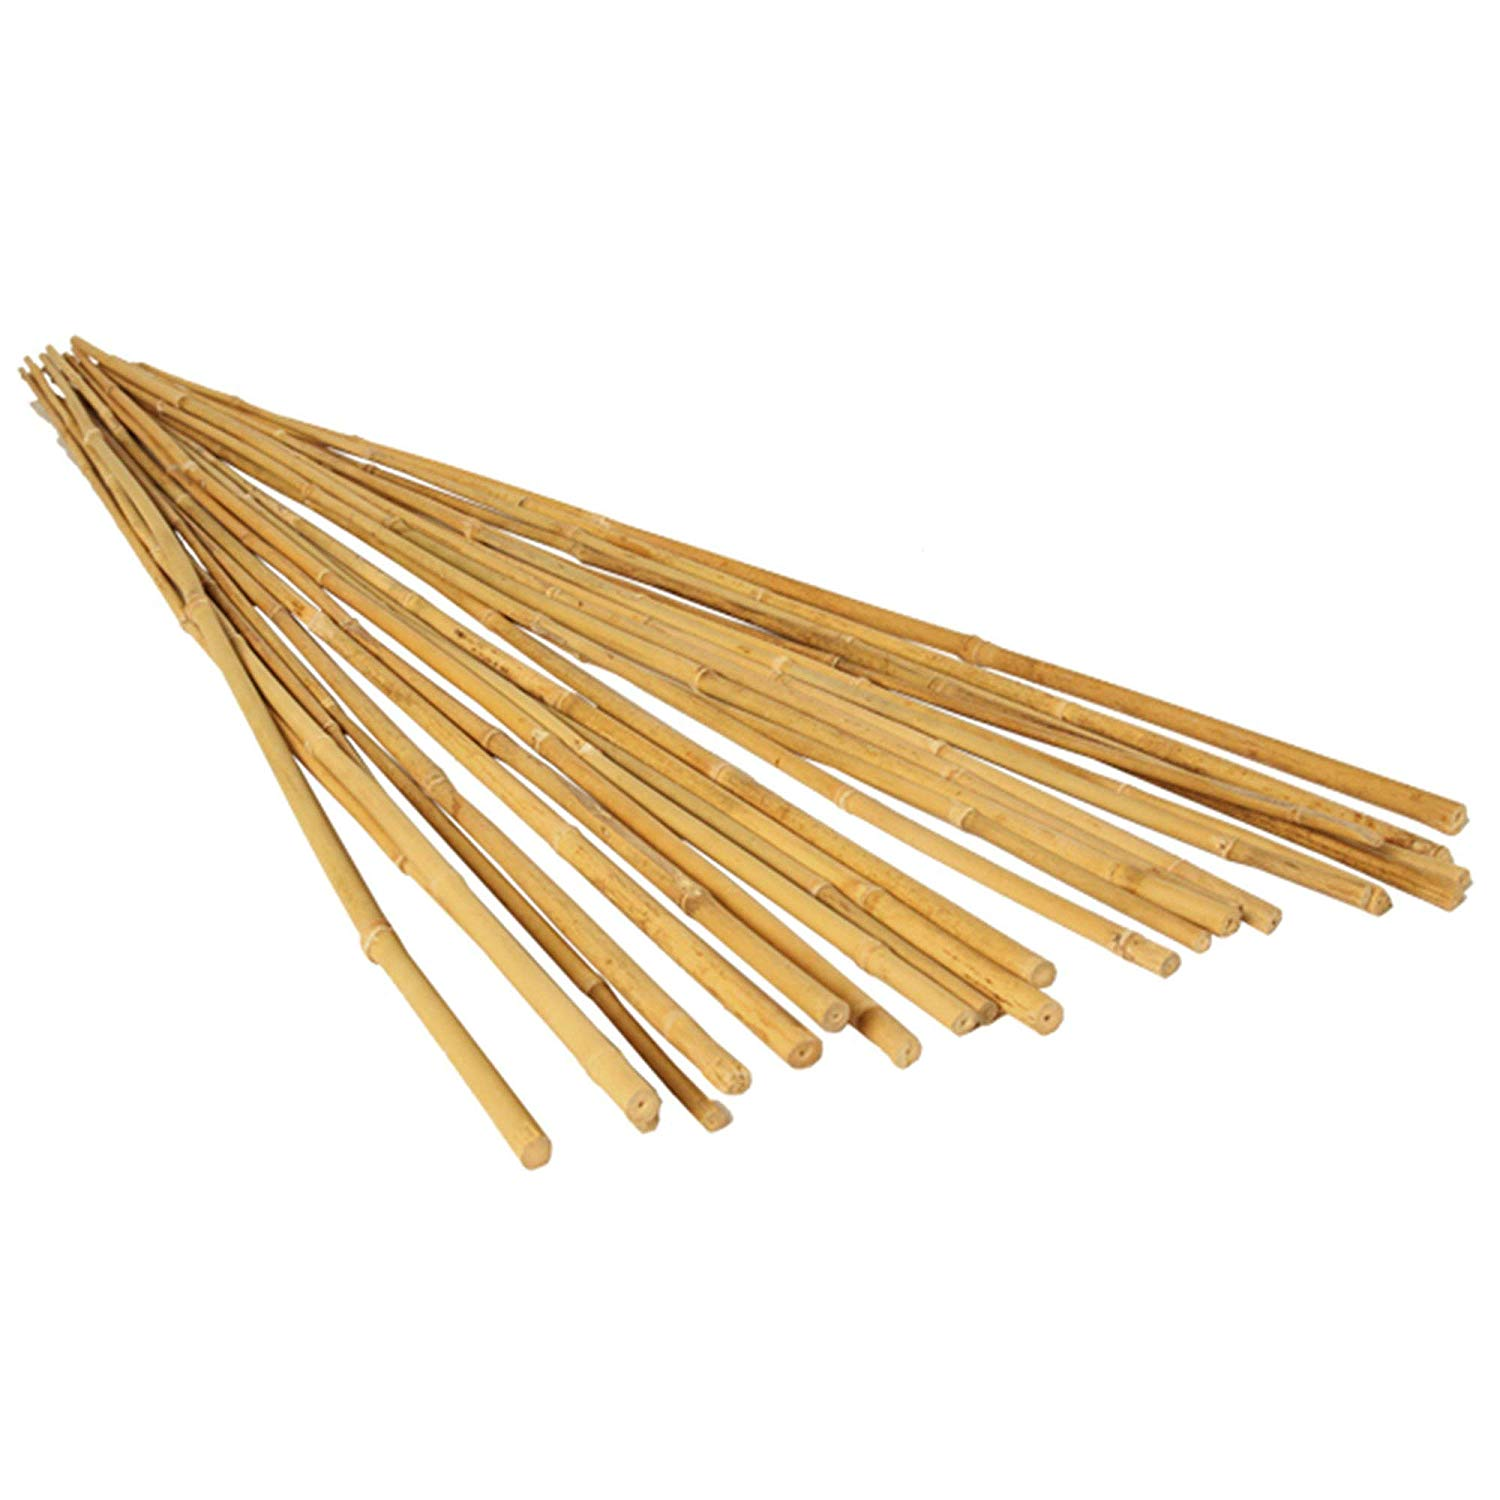 Bamboo Stake 7 FT. (10PCS/BDL)